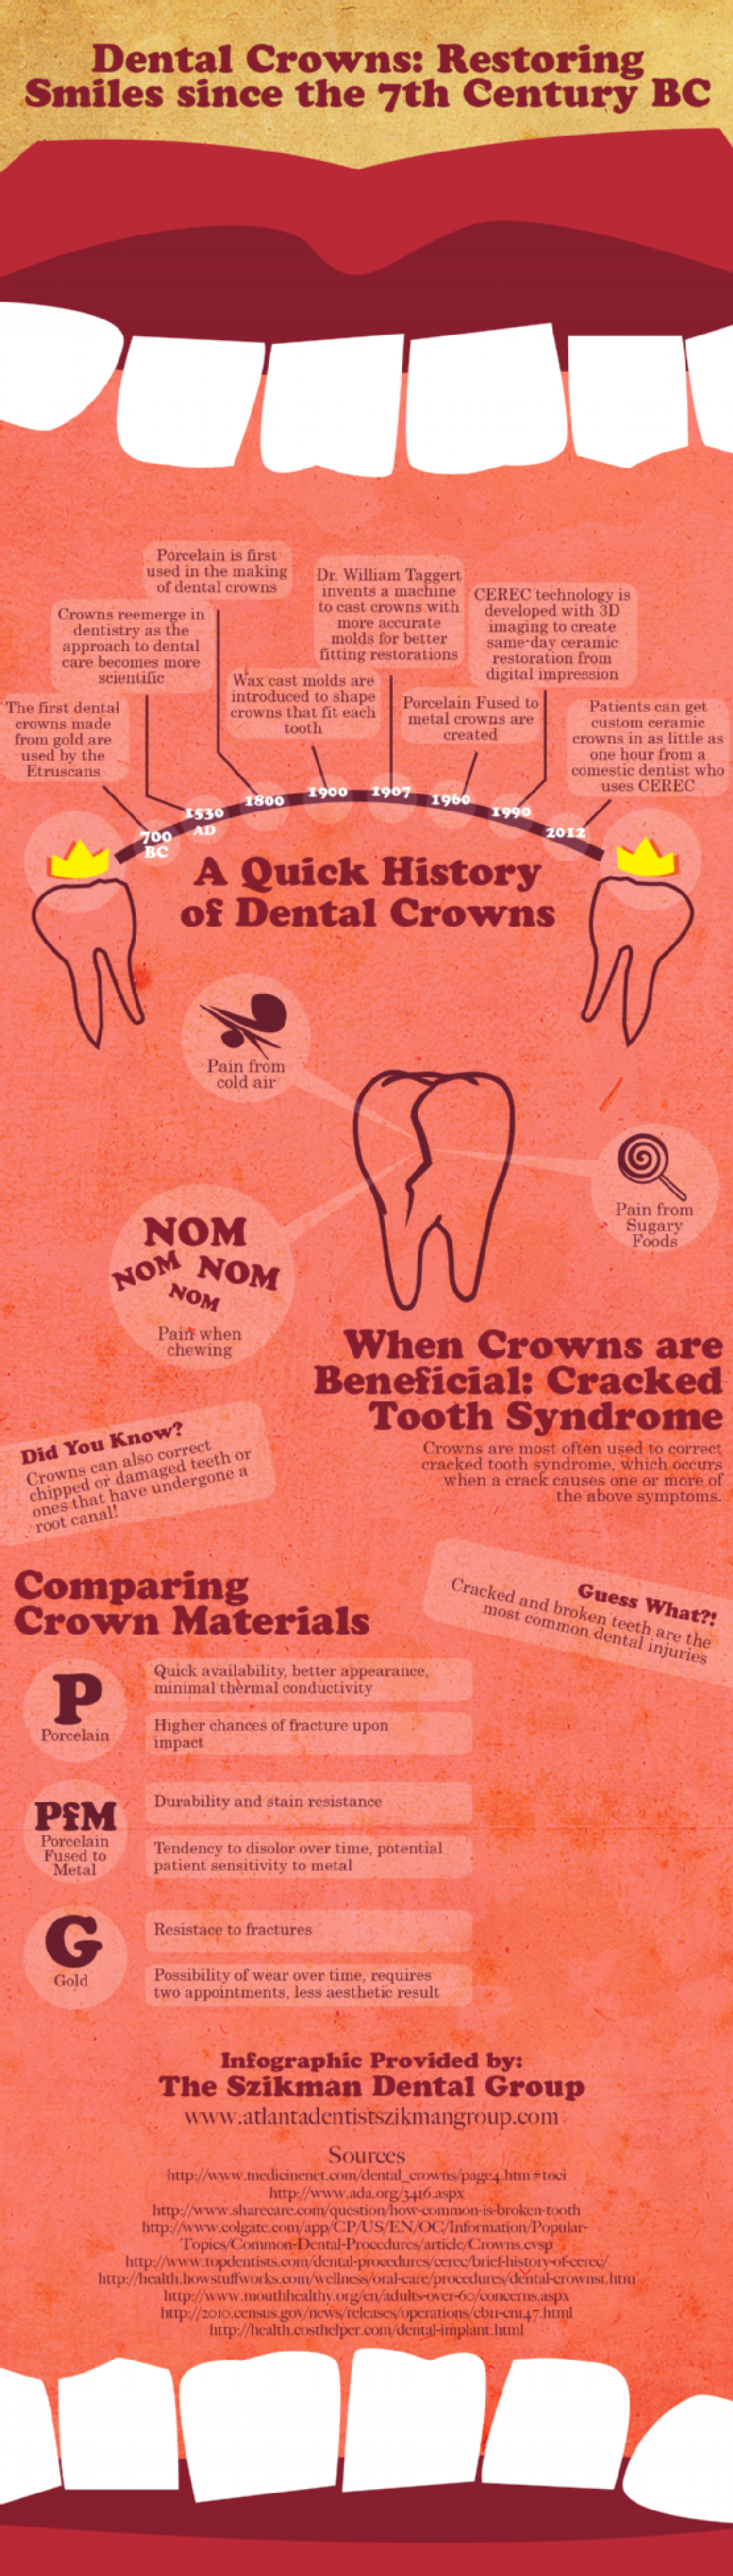 Dental Crowns: Restoring Smiles Since The 7th Century BC Infographic